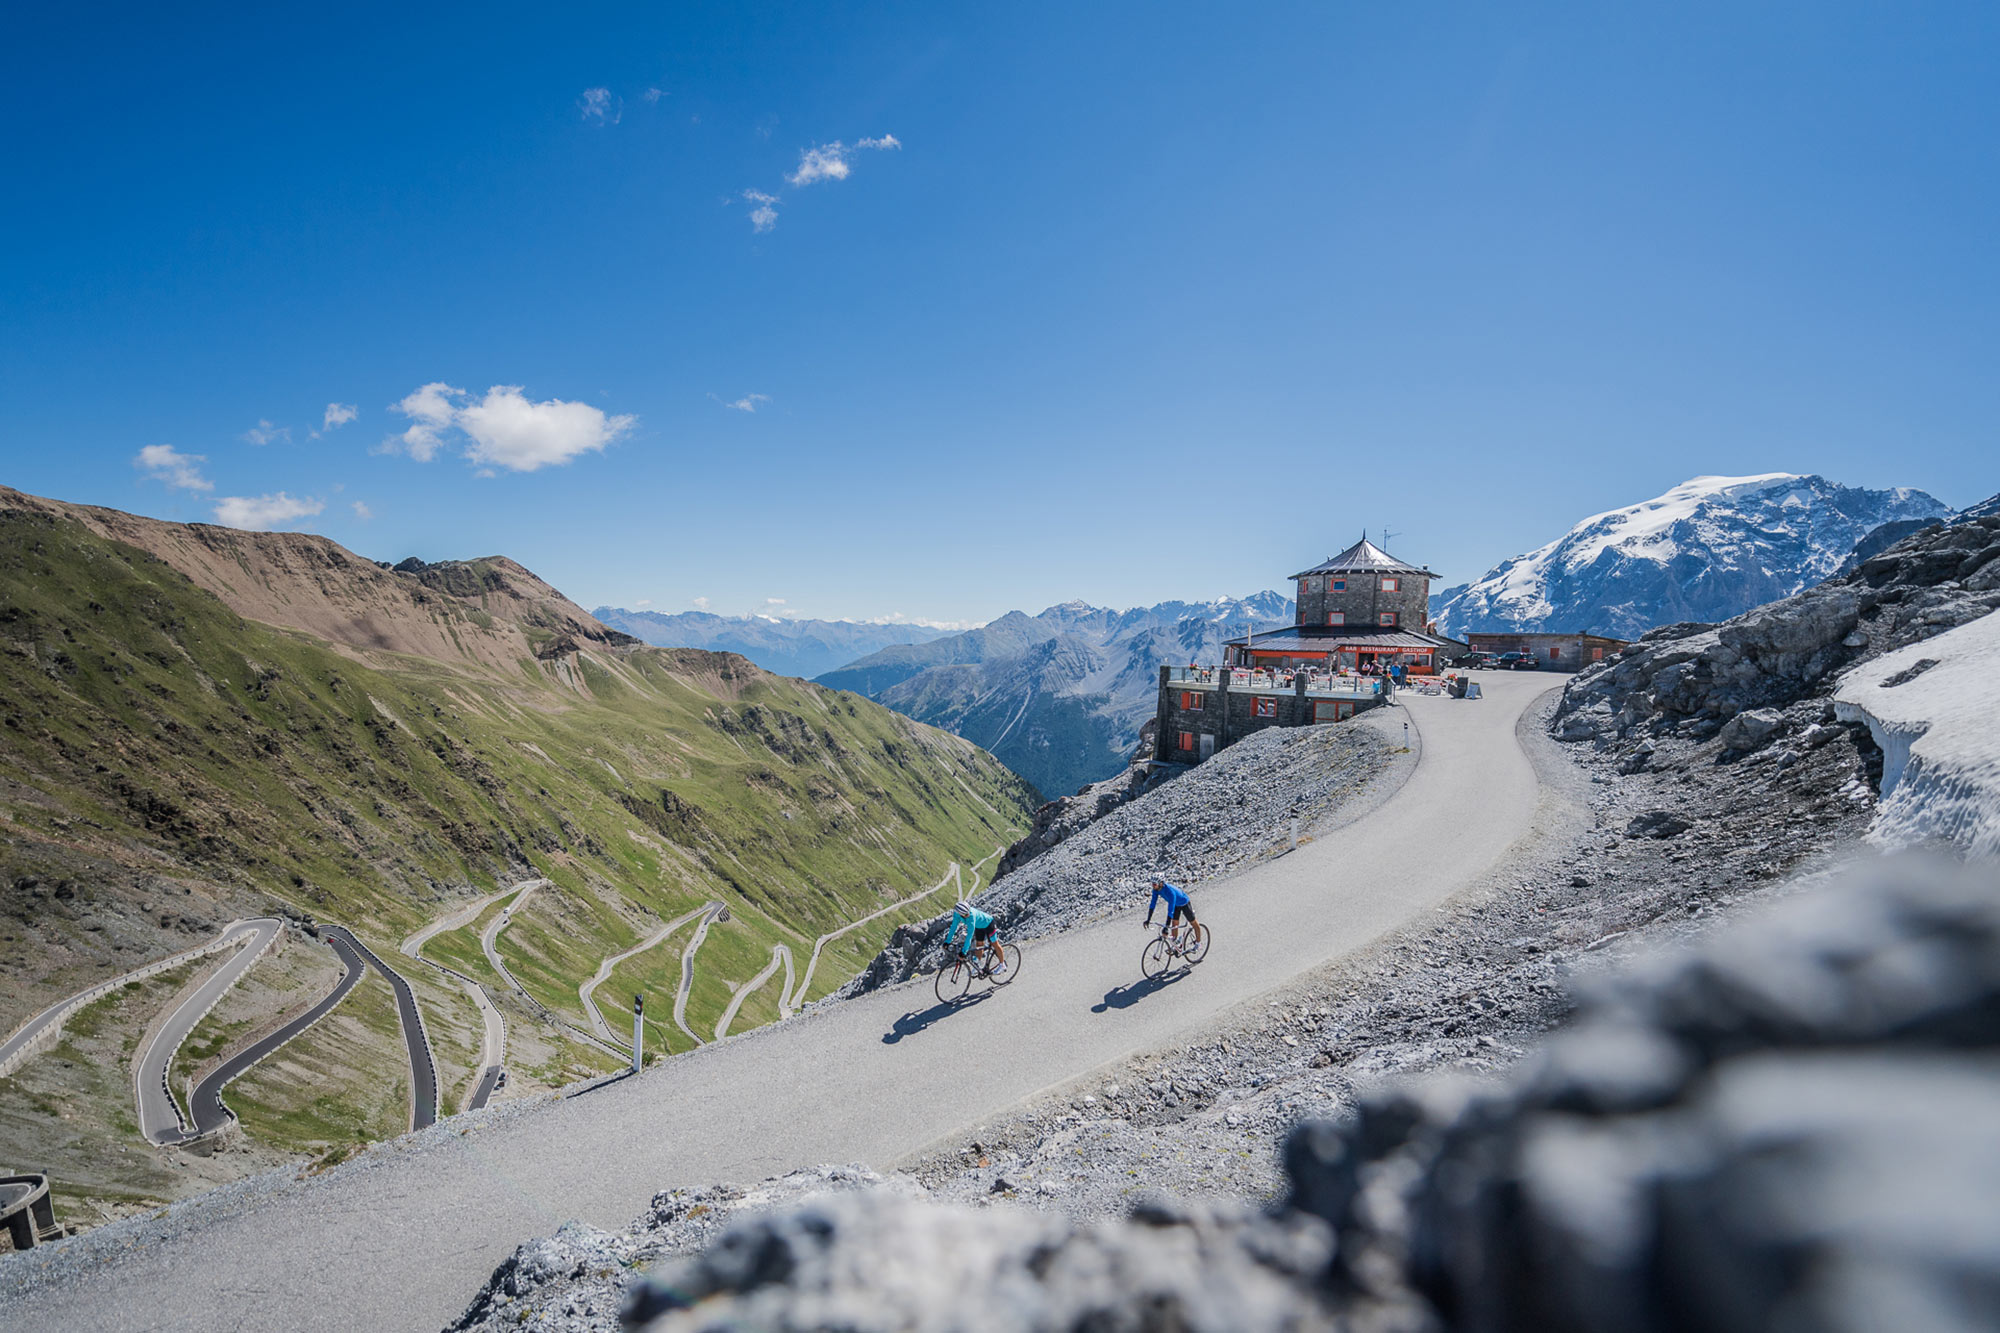 Cycling day on the Stelvio Pass - Alpine guesthouse Tibet Hut